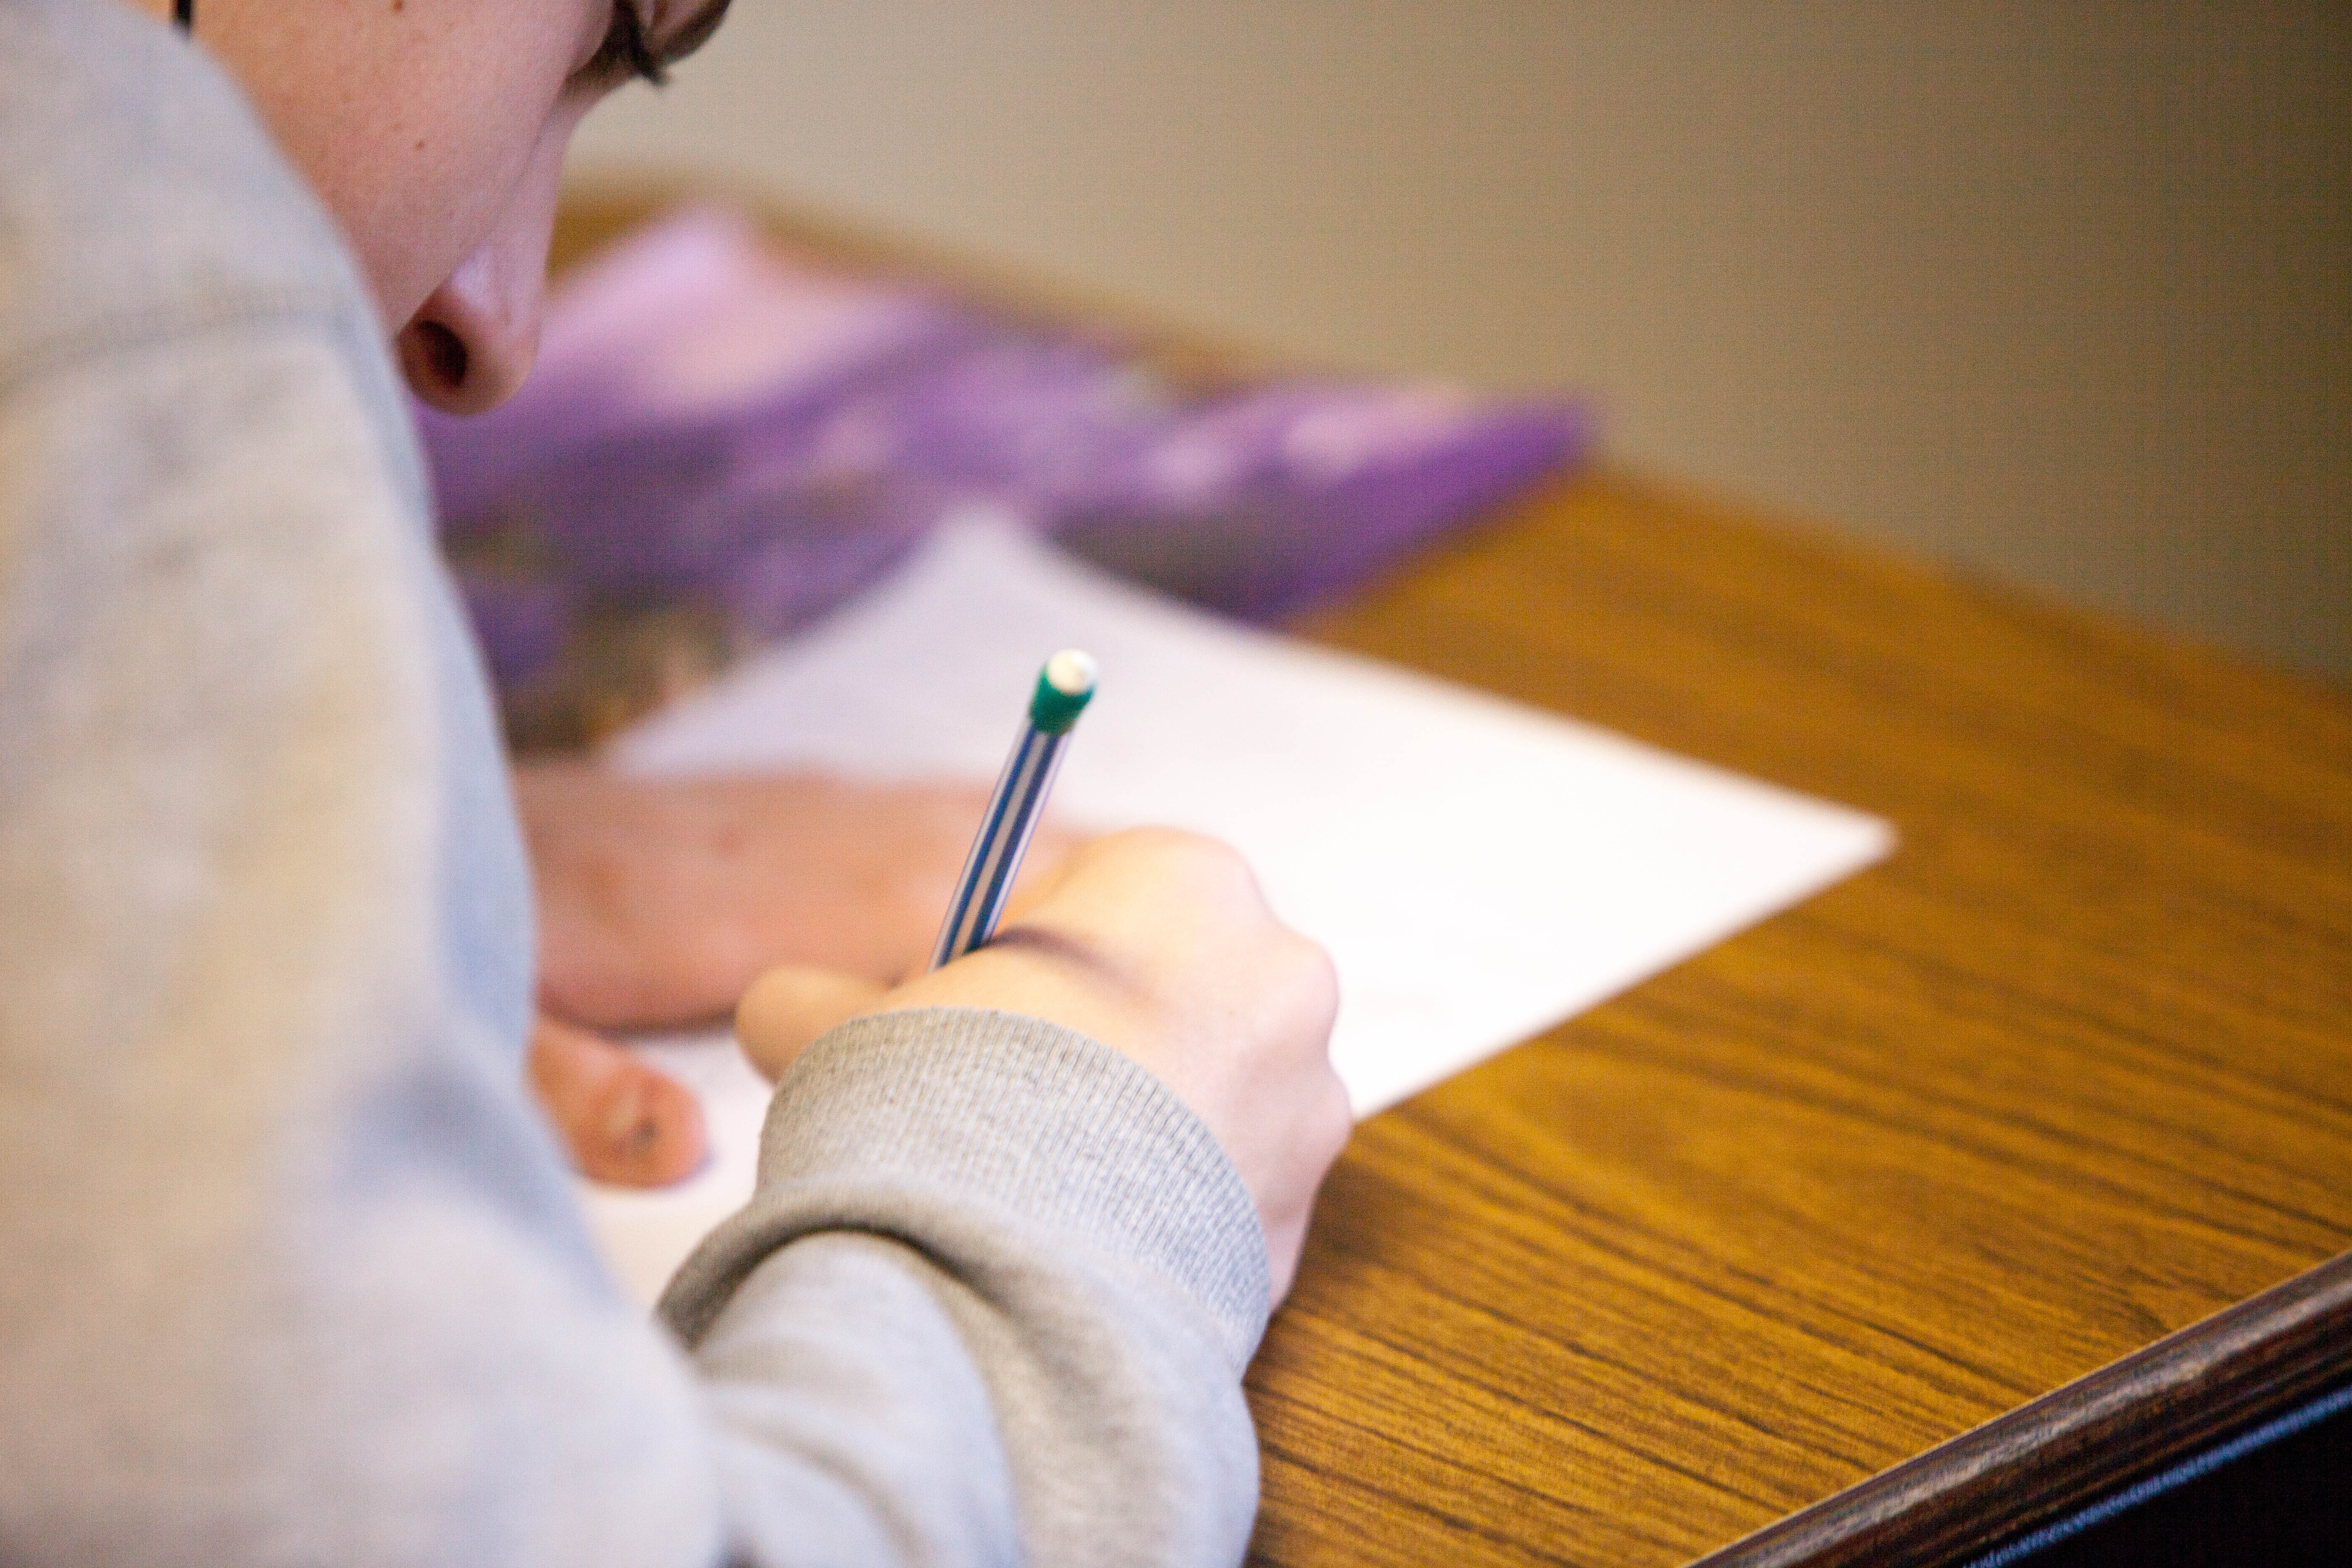 No Test Scores, Now What?